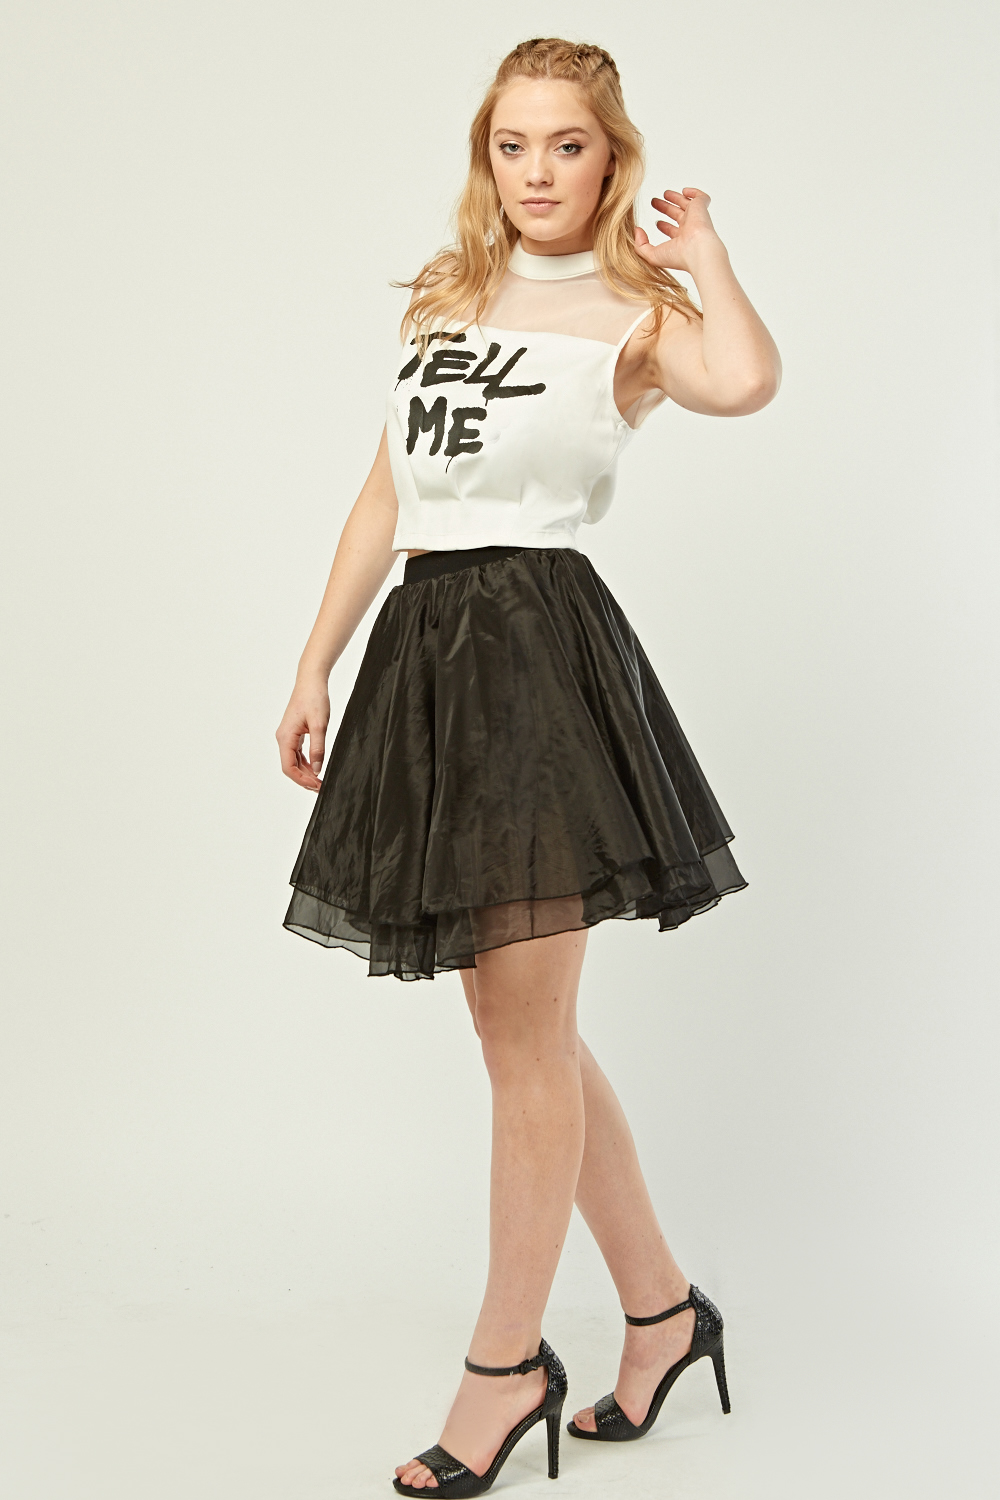 68d4b68336 Graphic Printed Top And Tulle Skirt Set. 5 (1 Reviews). £5.00. ColourBlack/Off  White